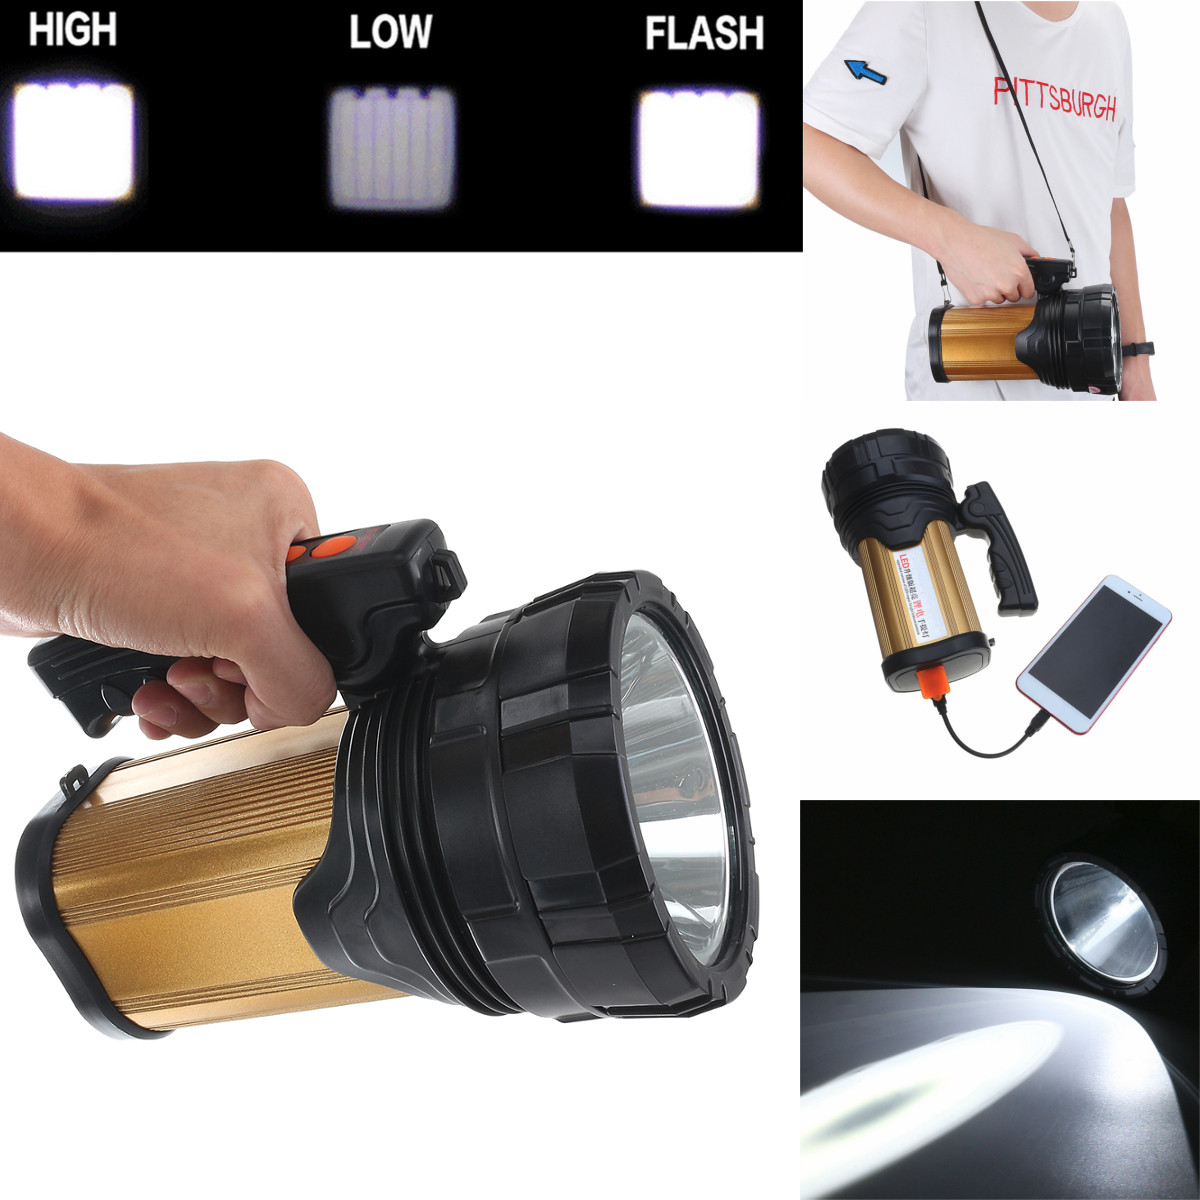 Portable Spotlight Lantern 120W LED Searchlight Rechargeable Handheld High Power Portable Light for Outdoor Camping high power portable spotlight lantern searchlight rechargeable waterproof hunting spotlight built in battery